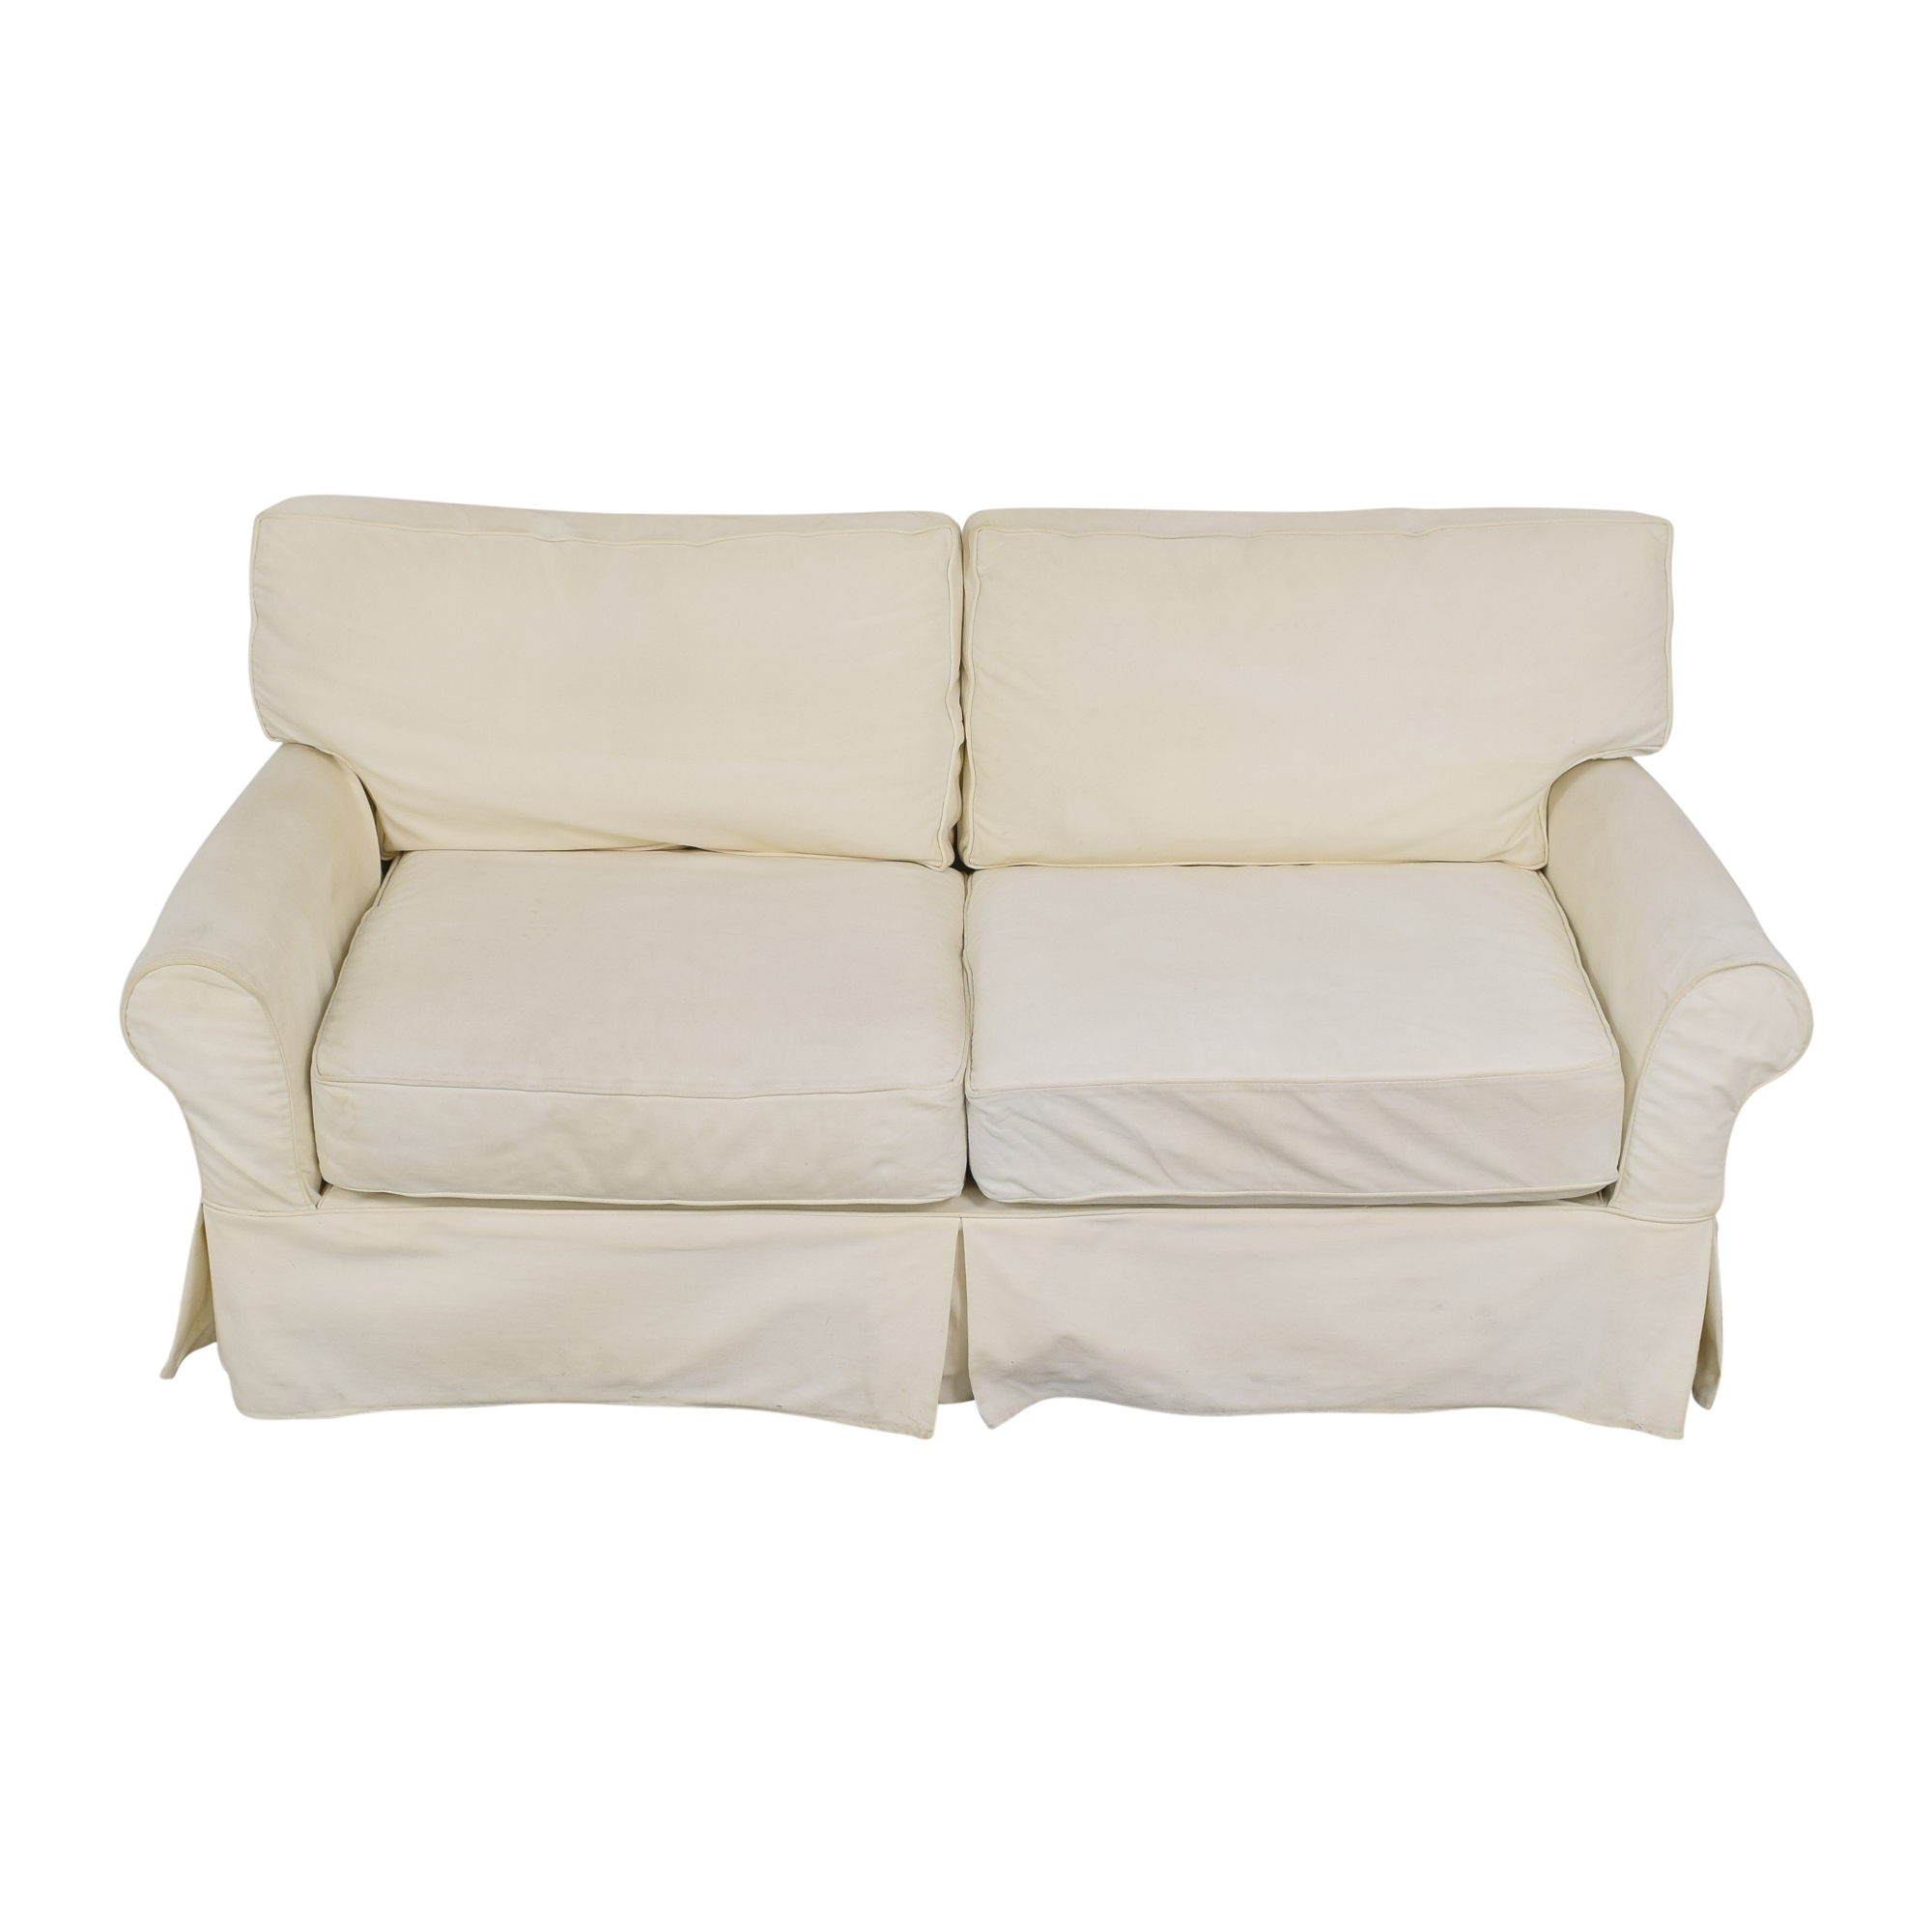 Crate & Barrel Crate & Barrel Bayside Apartment Sofa off white